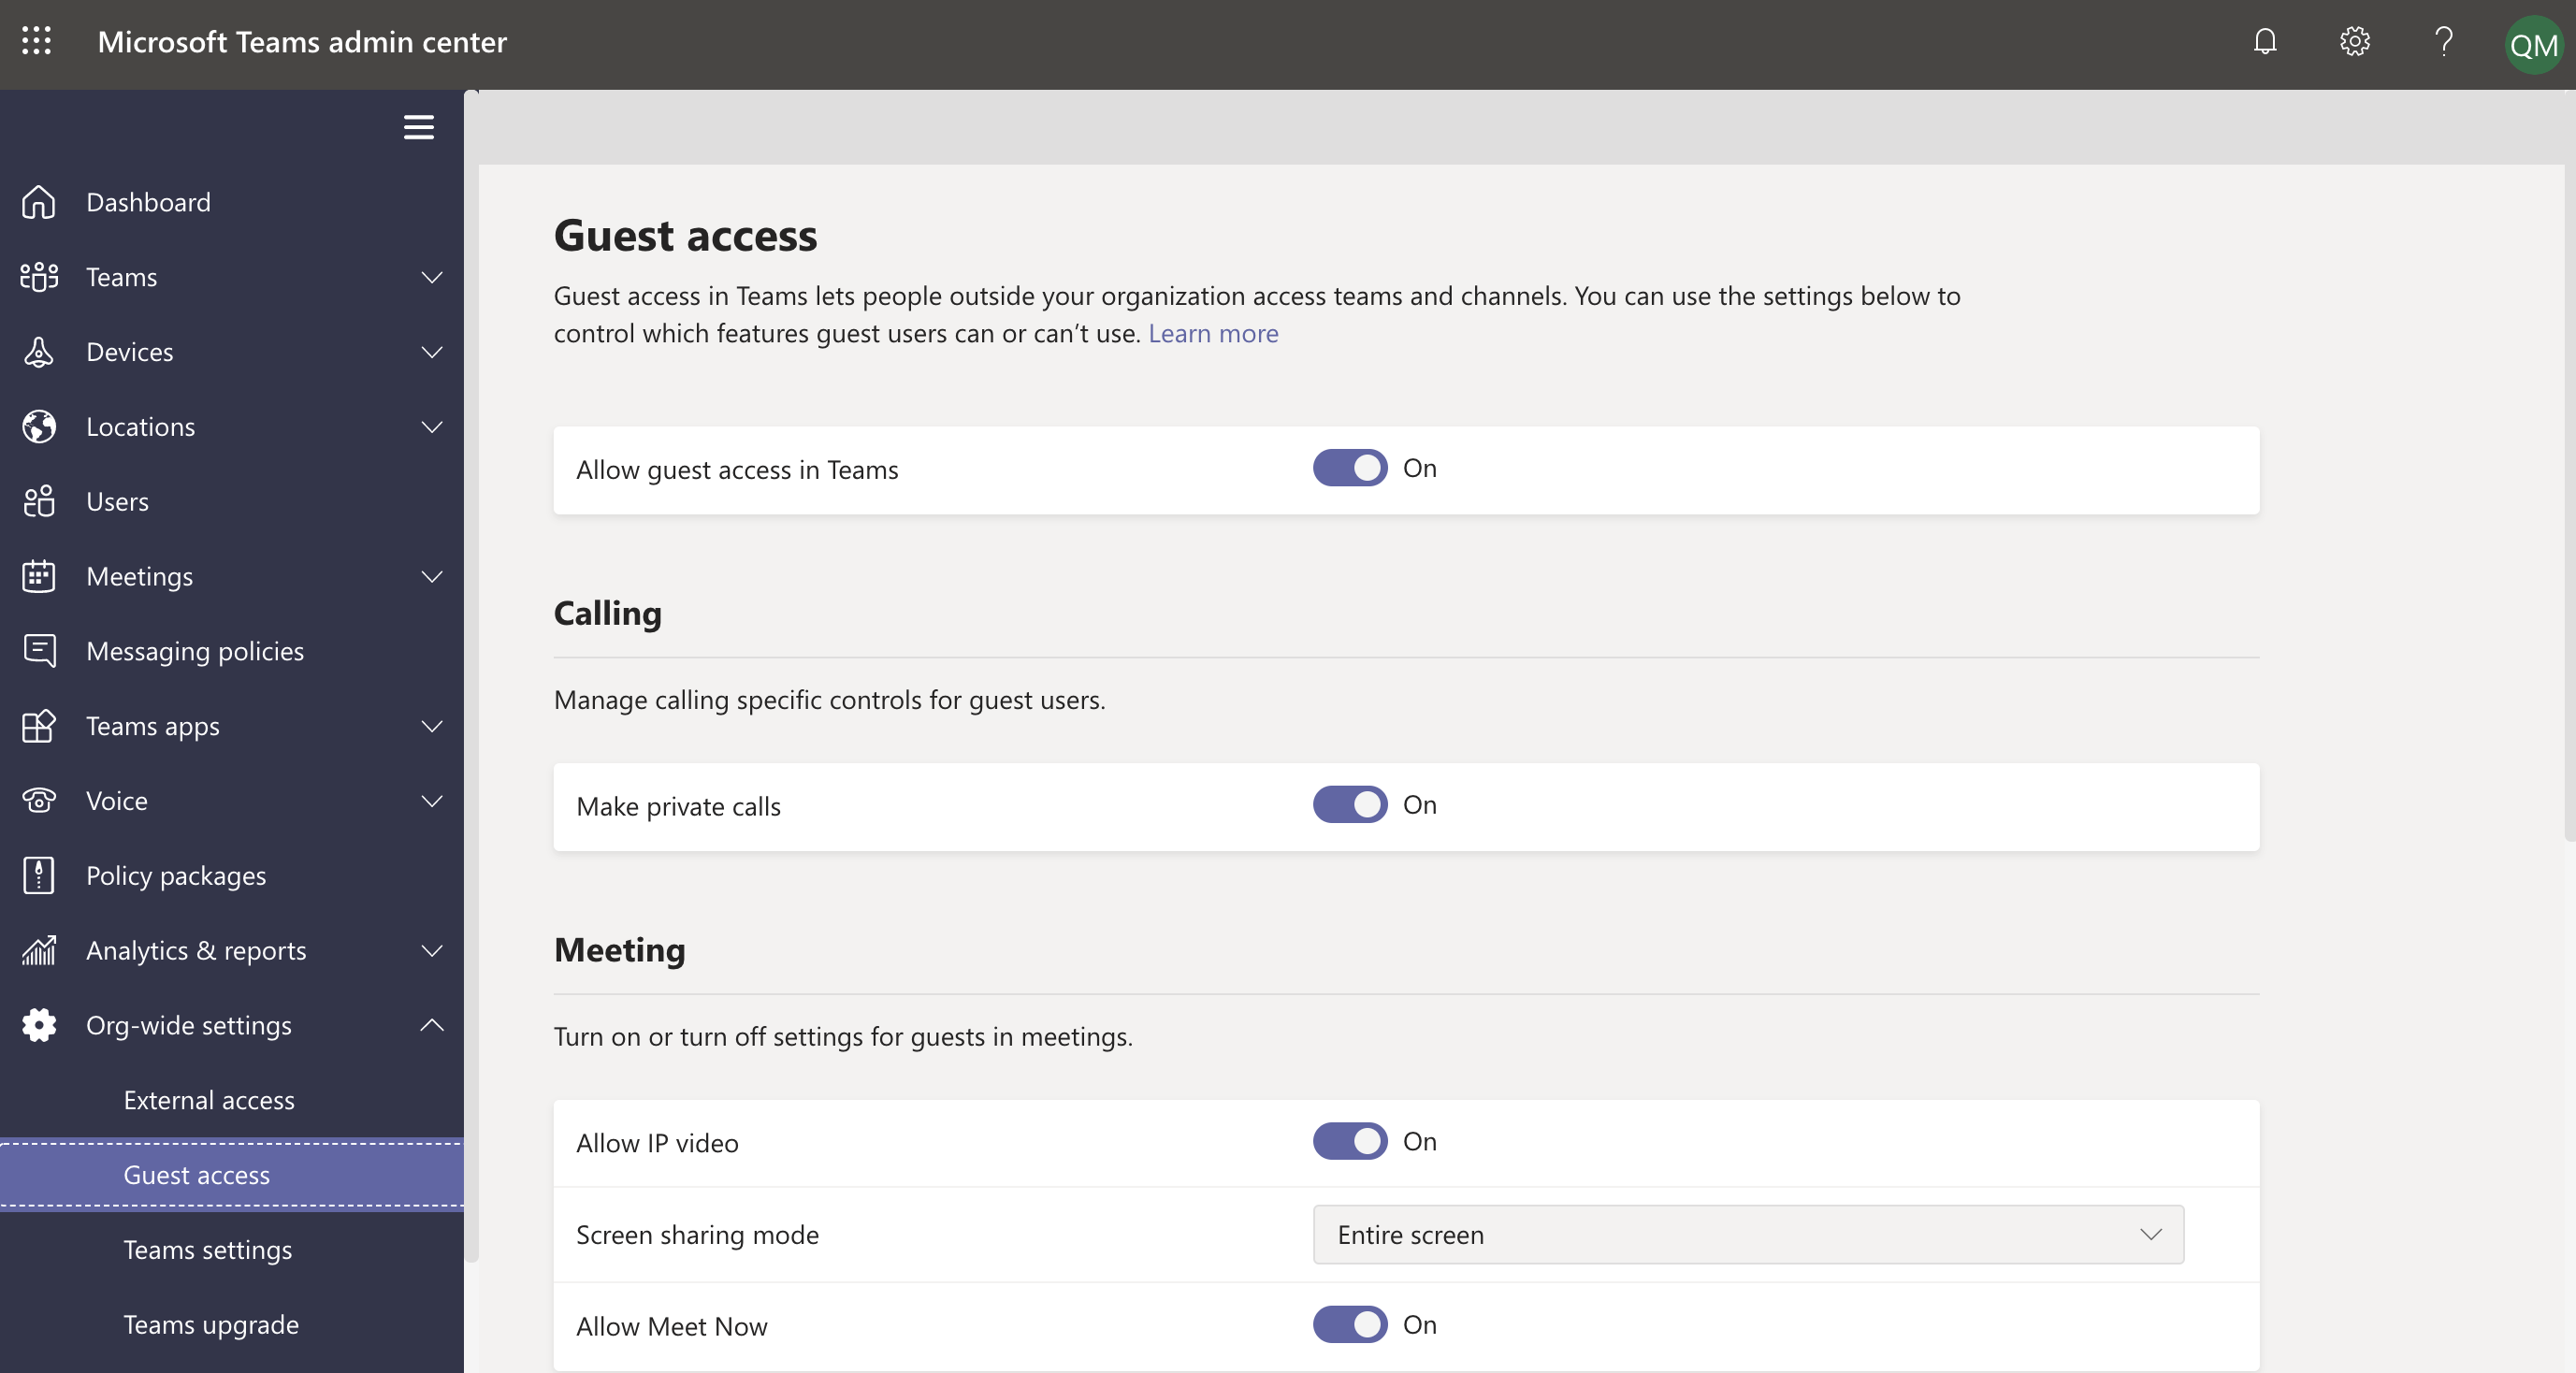 Configure guest access settings in Teams admin center.